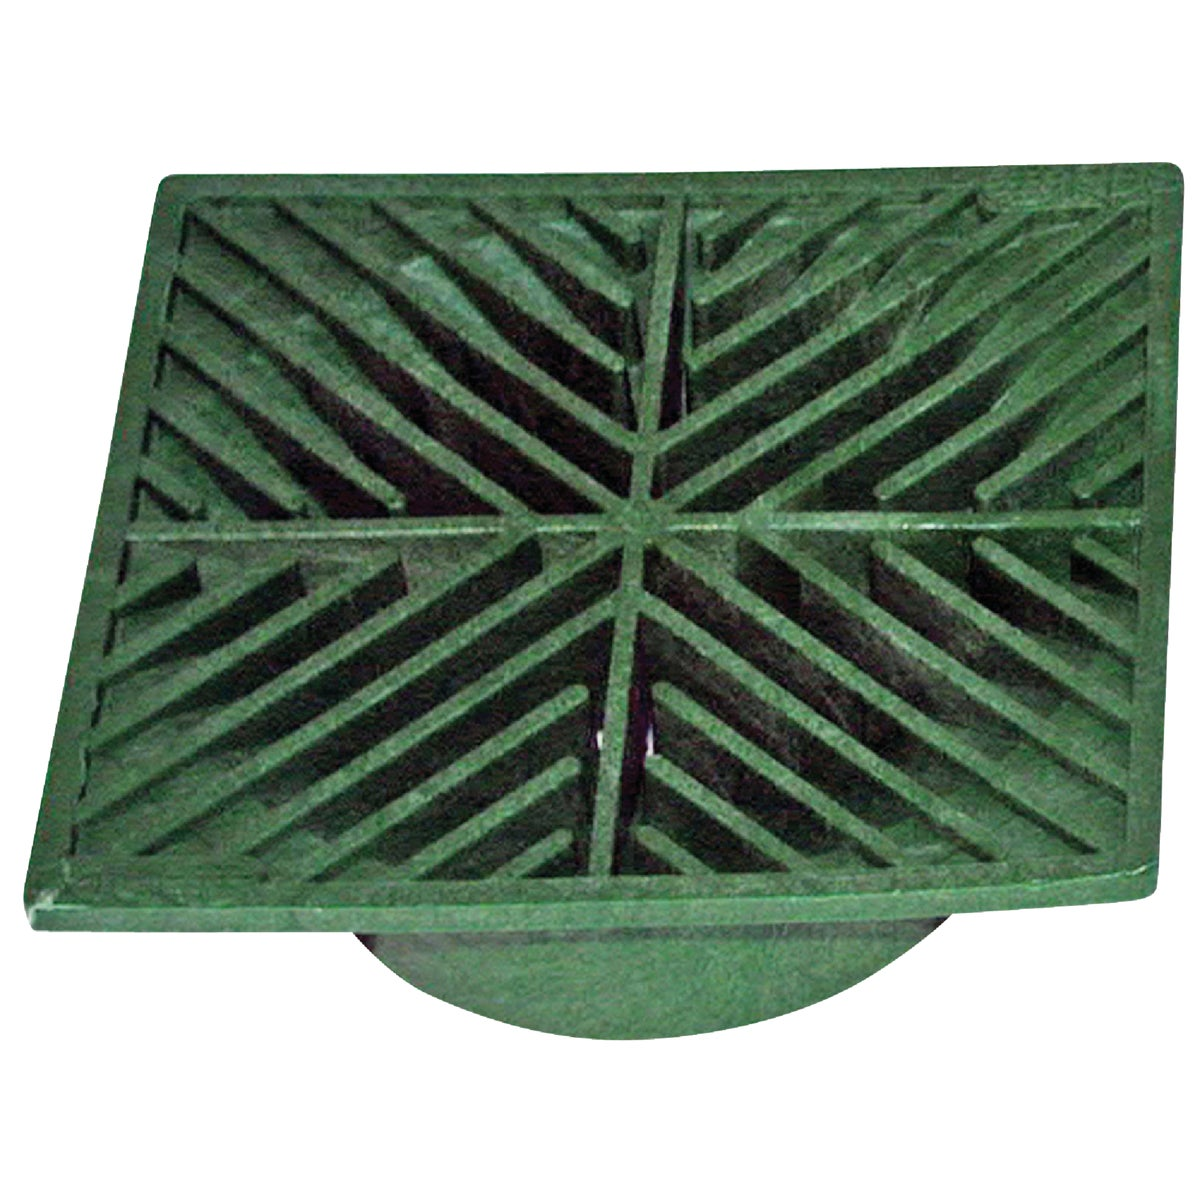 "6"" SQUARE GREEN GRATE - 05 by National Diversified"